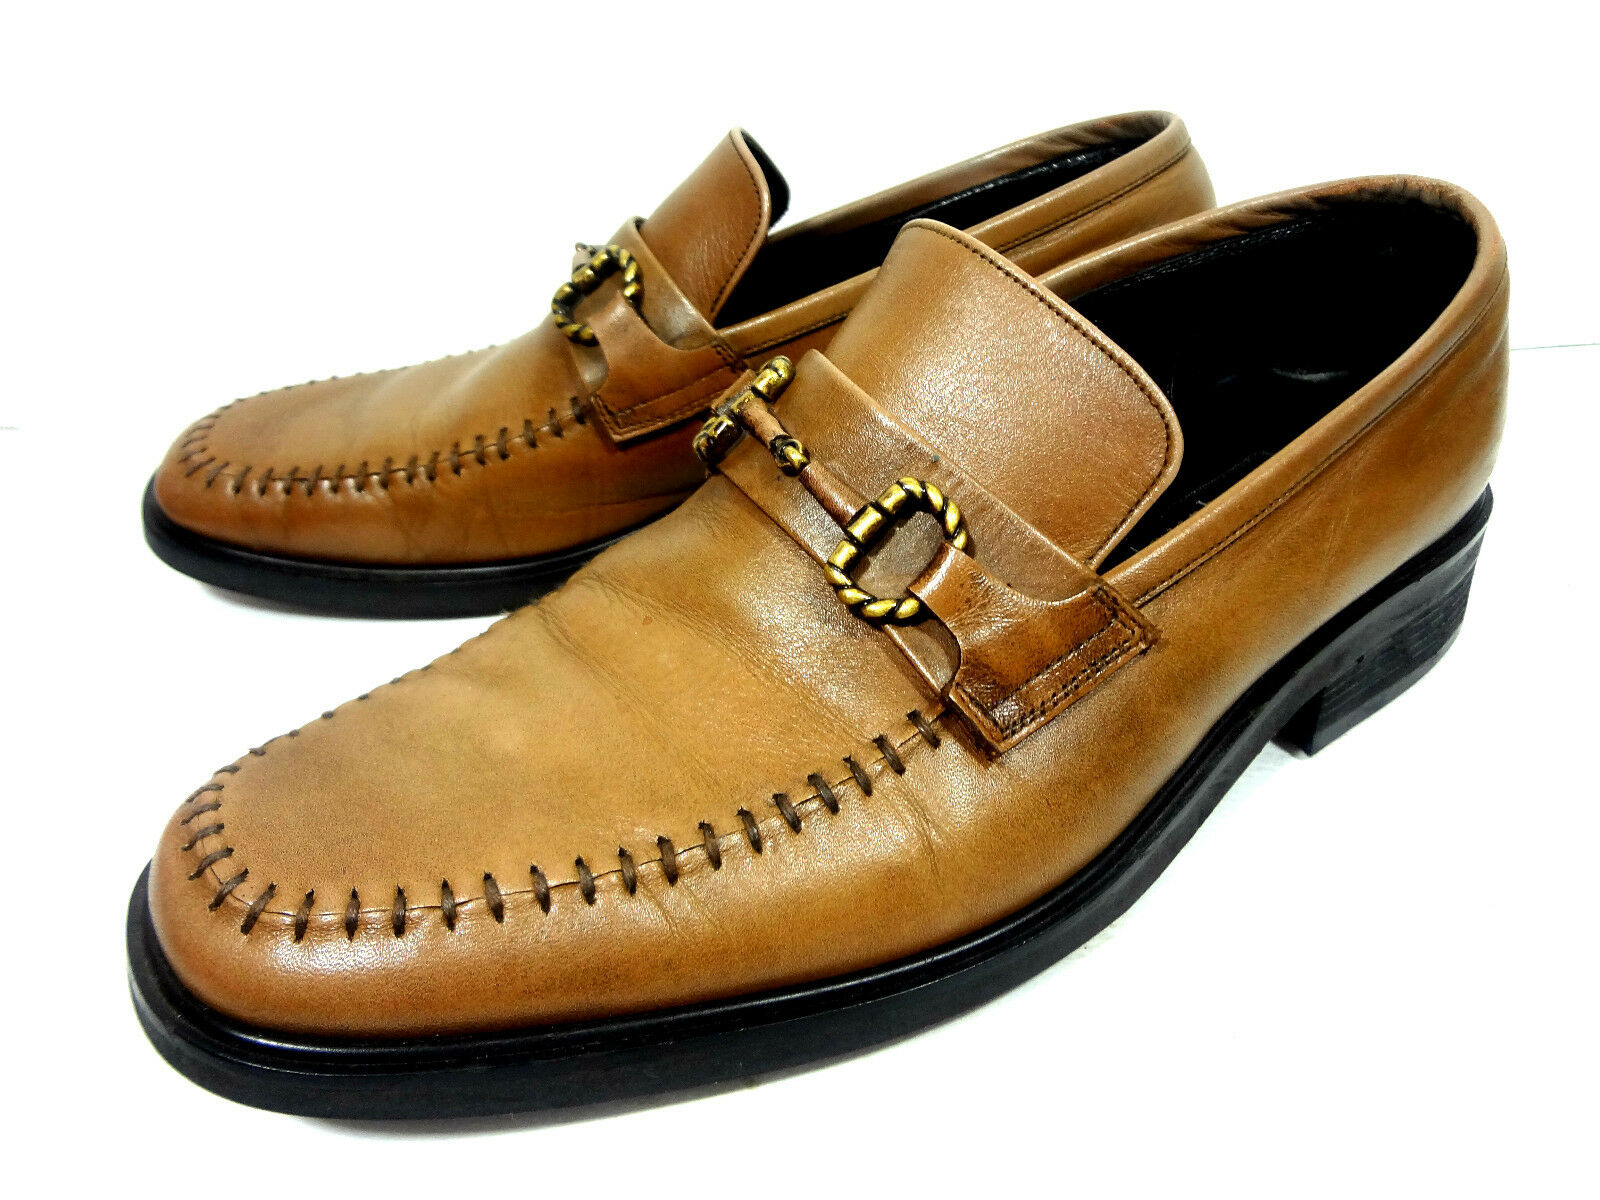 ESQUIRE MENS LOAFERS BRWON LEATHER SHOES SIZE 10 M